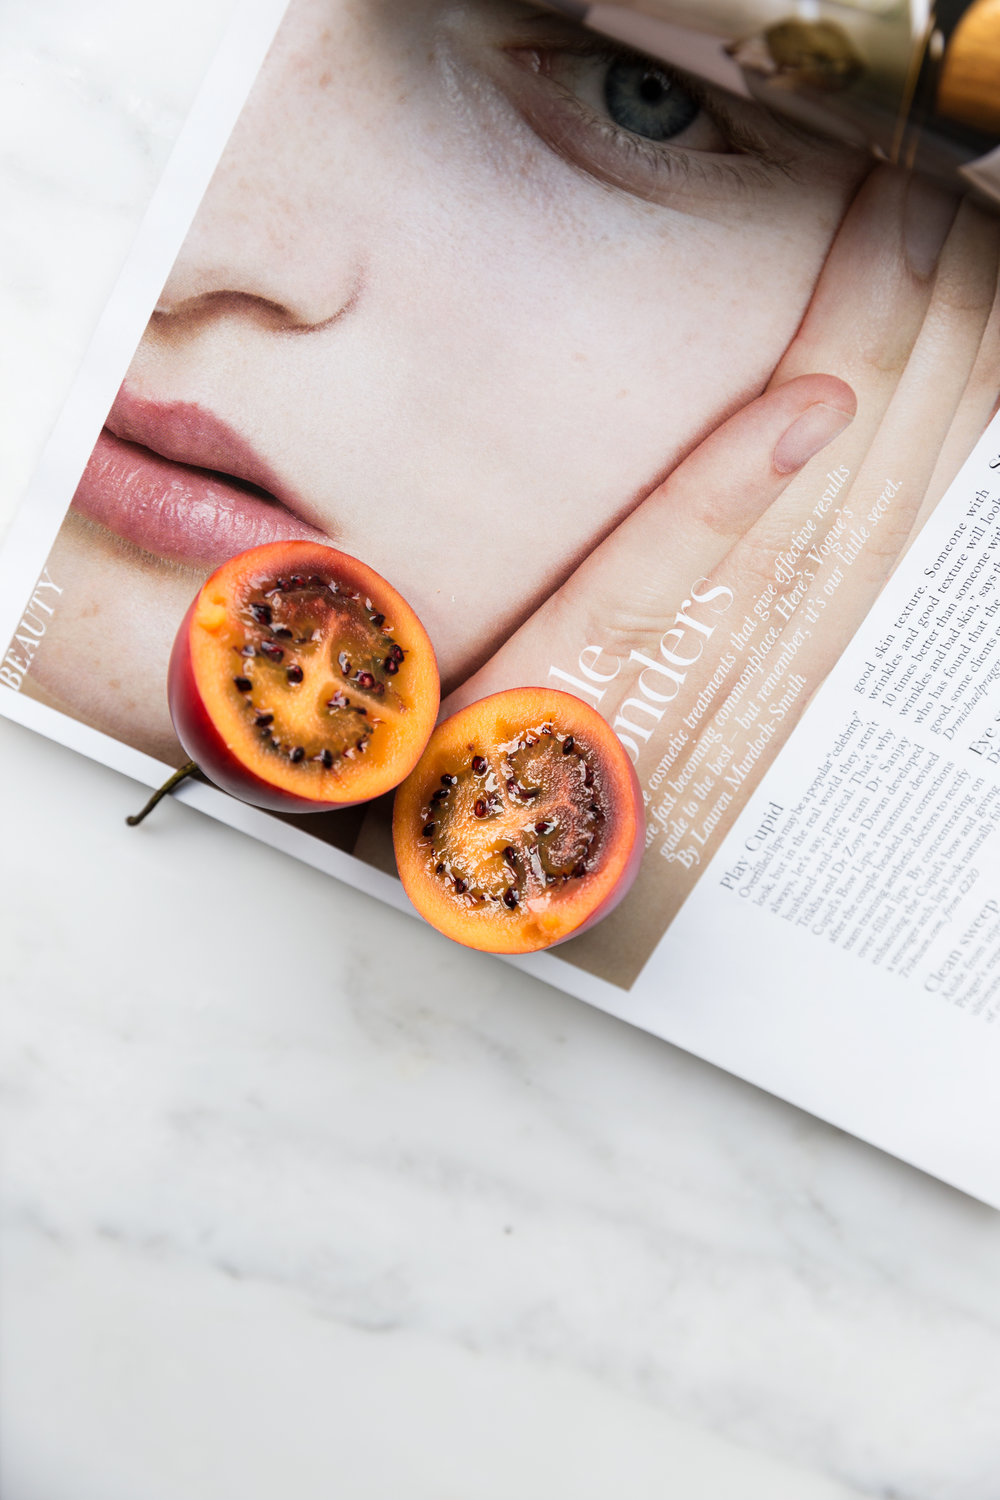 AVOID PREMATURE AGING WITH TAMARILLO  - DECEMBER 12,  2017Avoid premature aging with this delicious fruit, Tamarillo. Its content of antioxidants, vitamin A, C y E make tamarillo a shield against free radicals, delaying premature aging so our skin will be more beautiful and healthy...read more